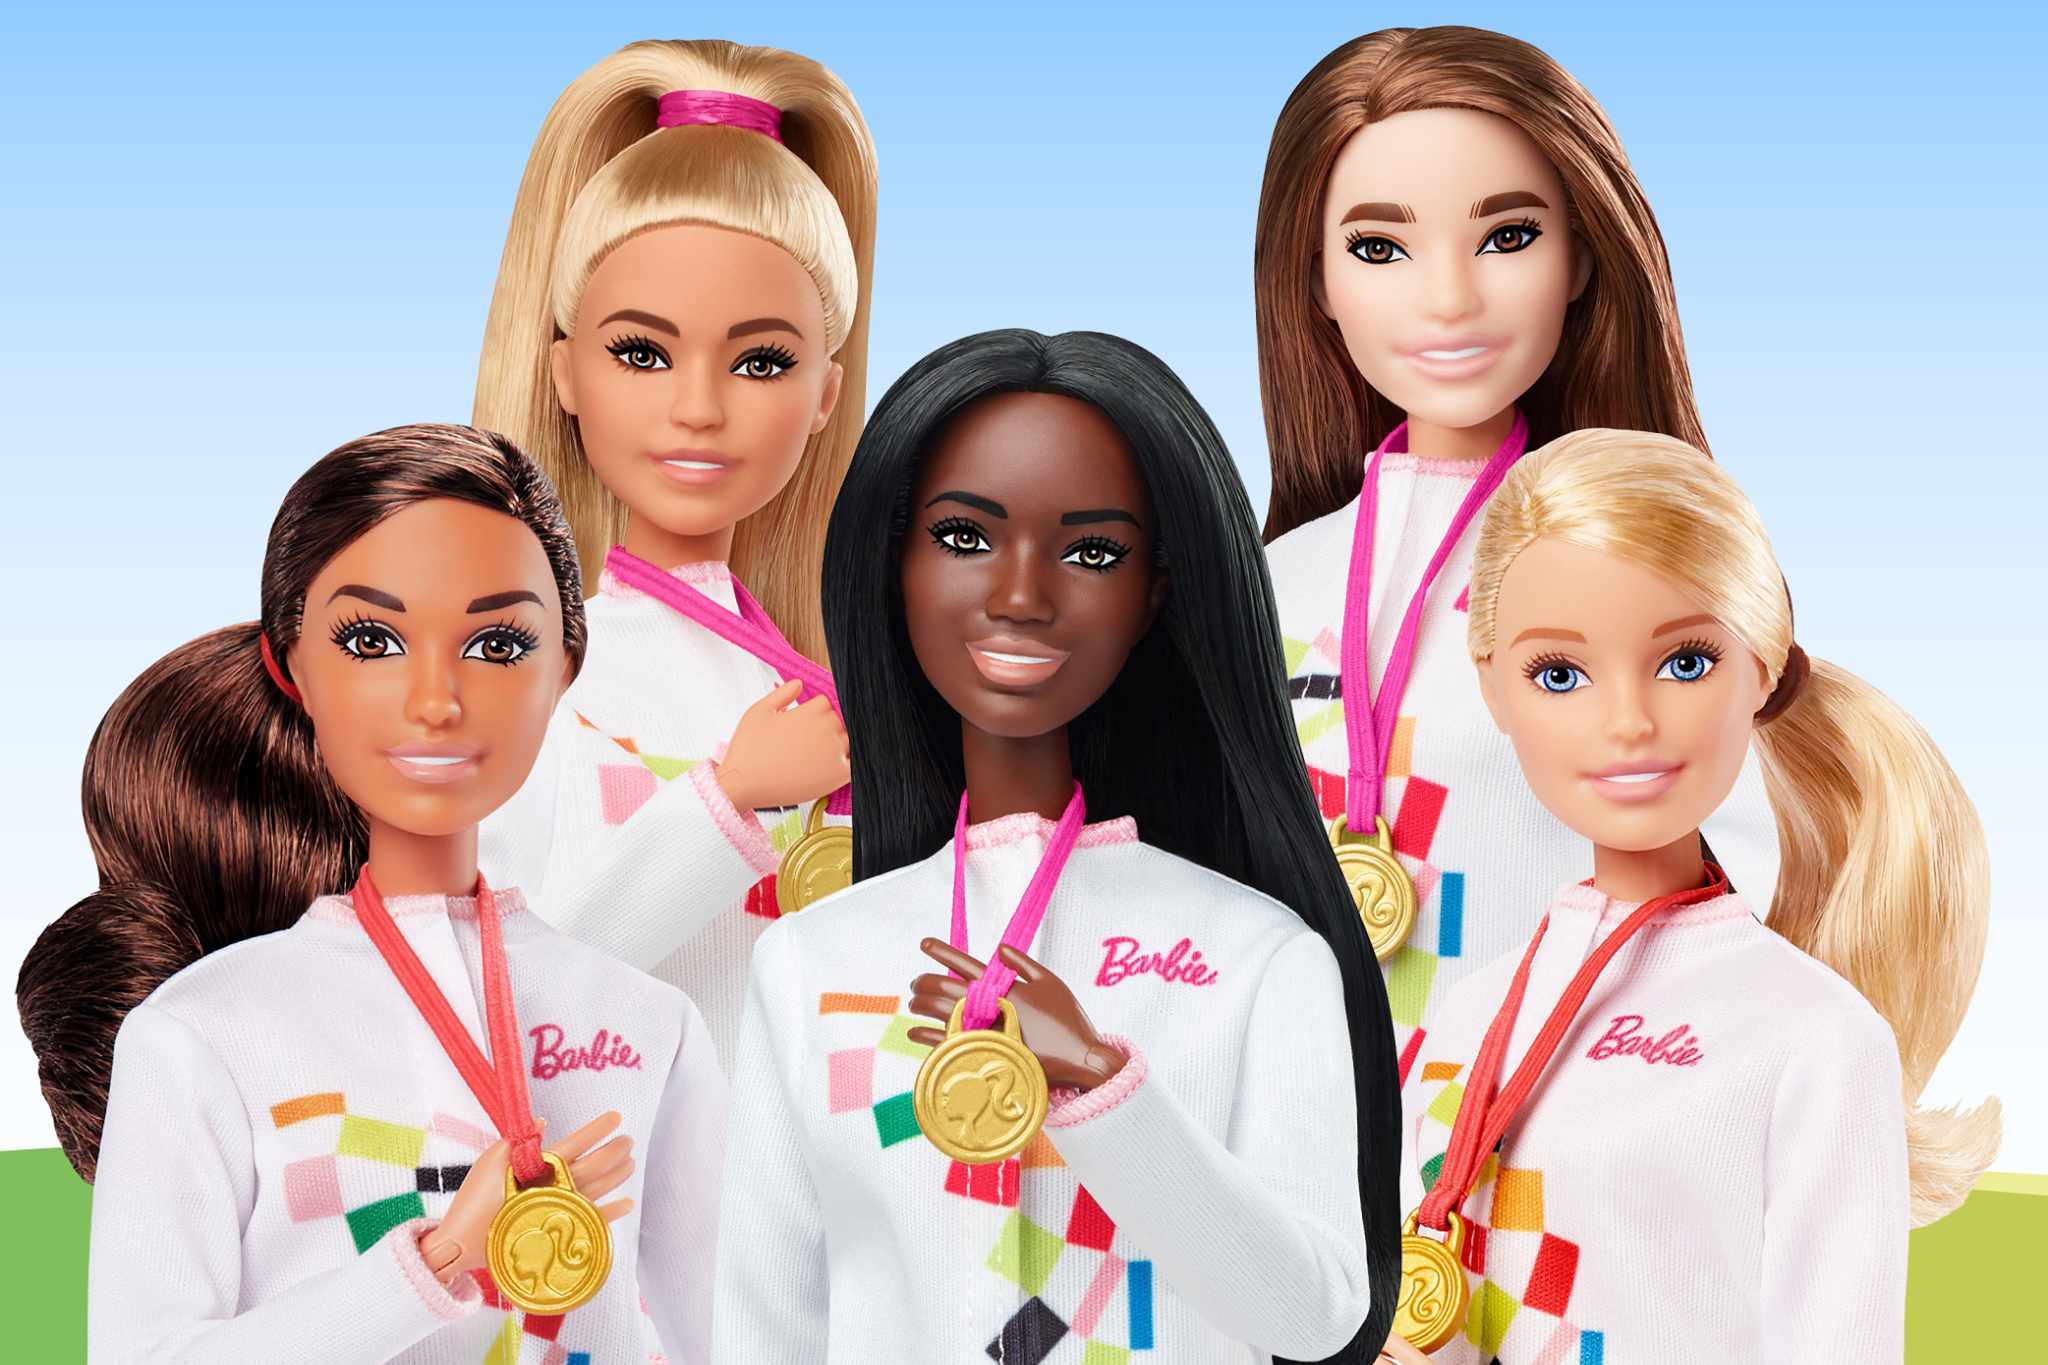 Mattel says it 'fell short' of Asian representation in Olympics Barbie collection